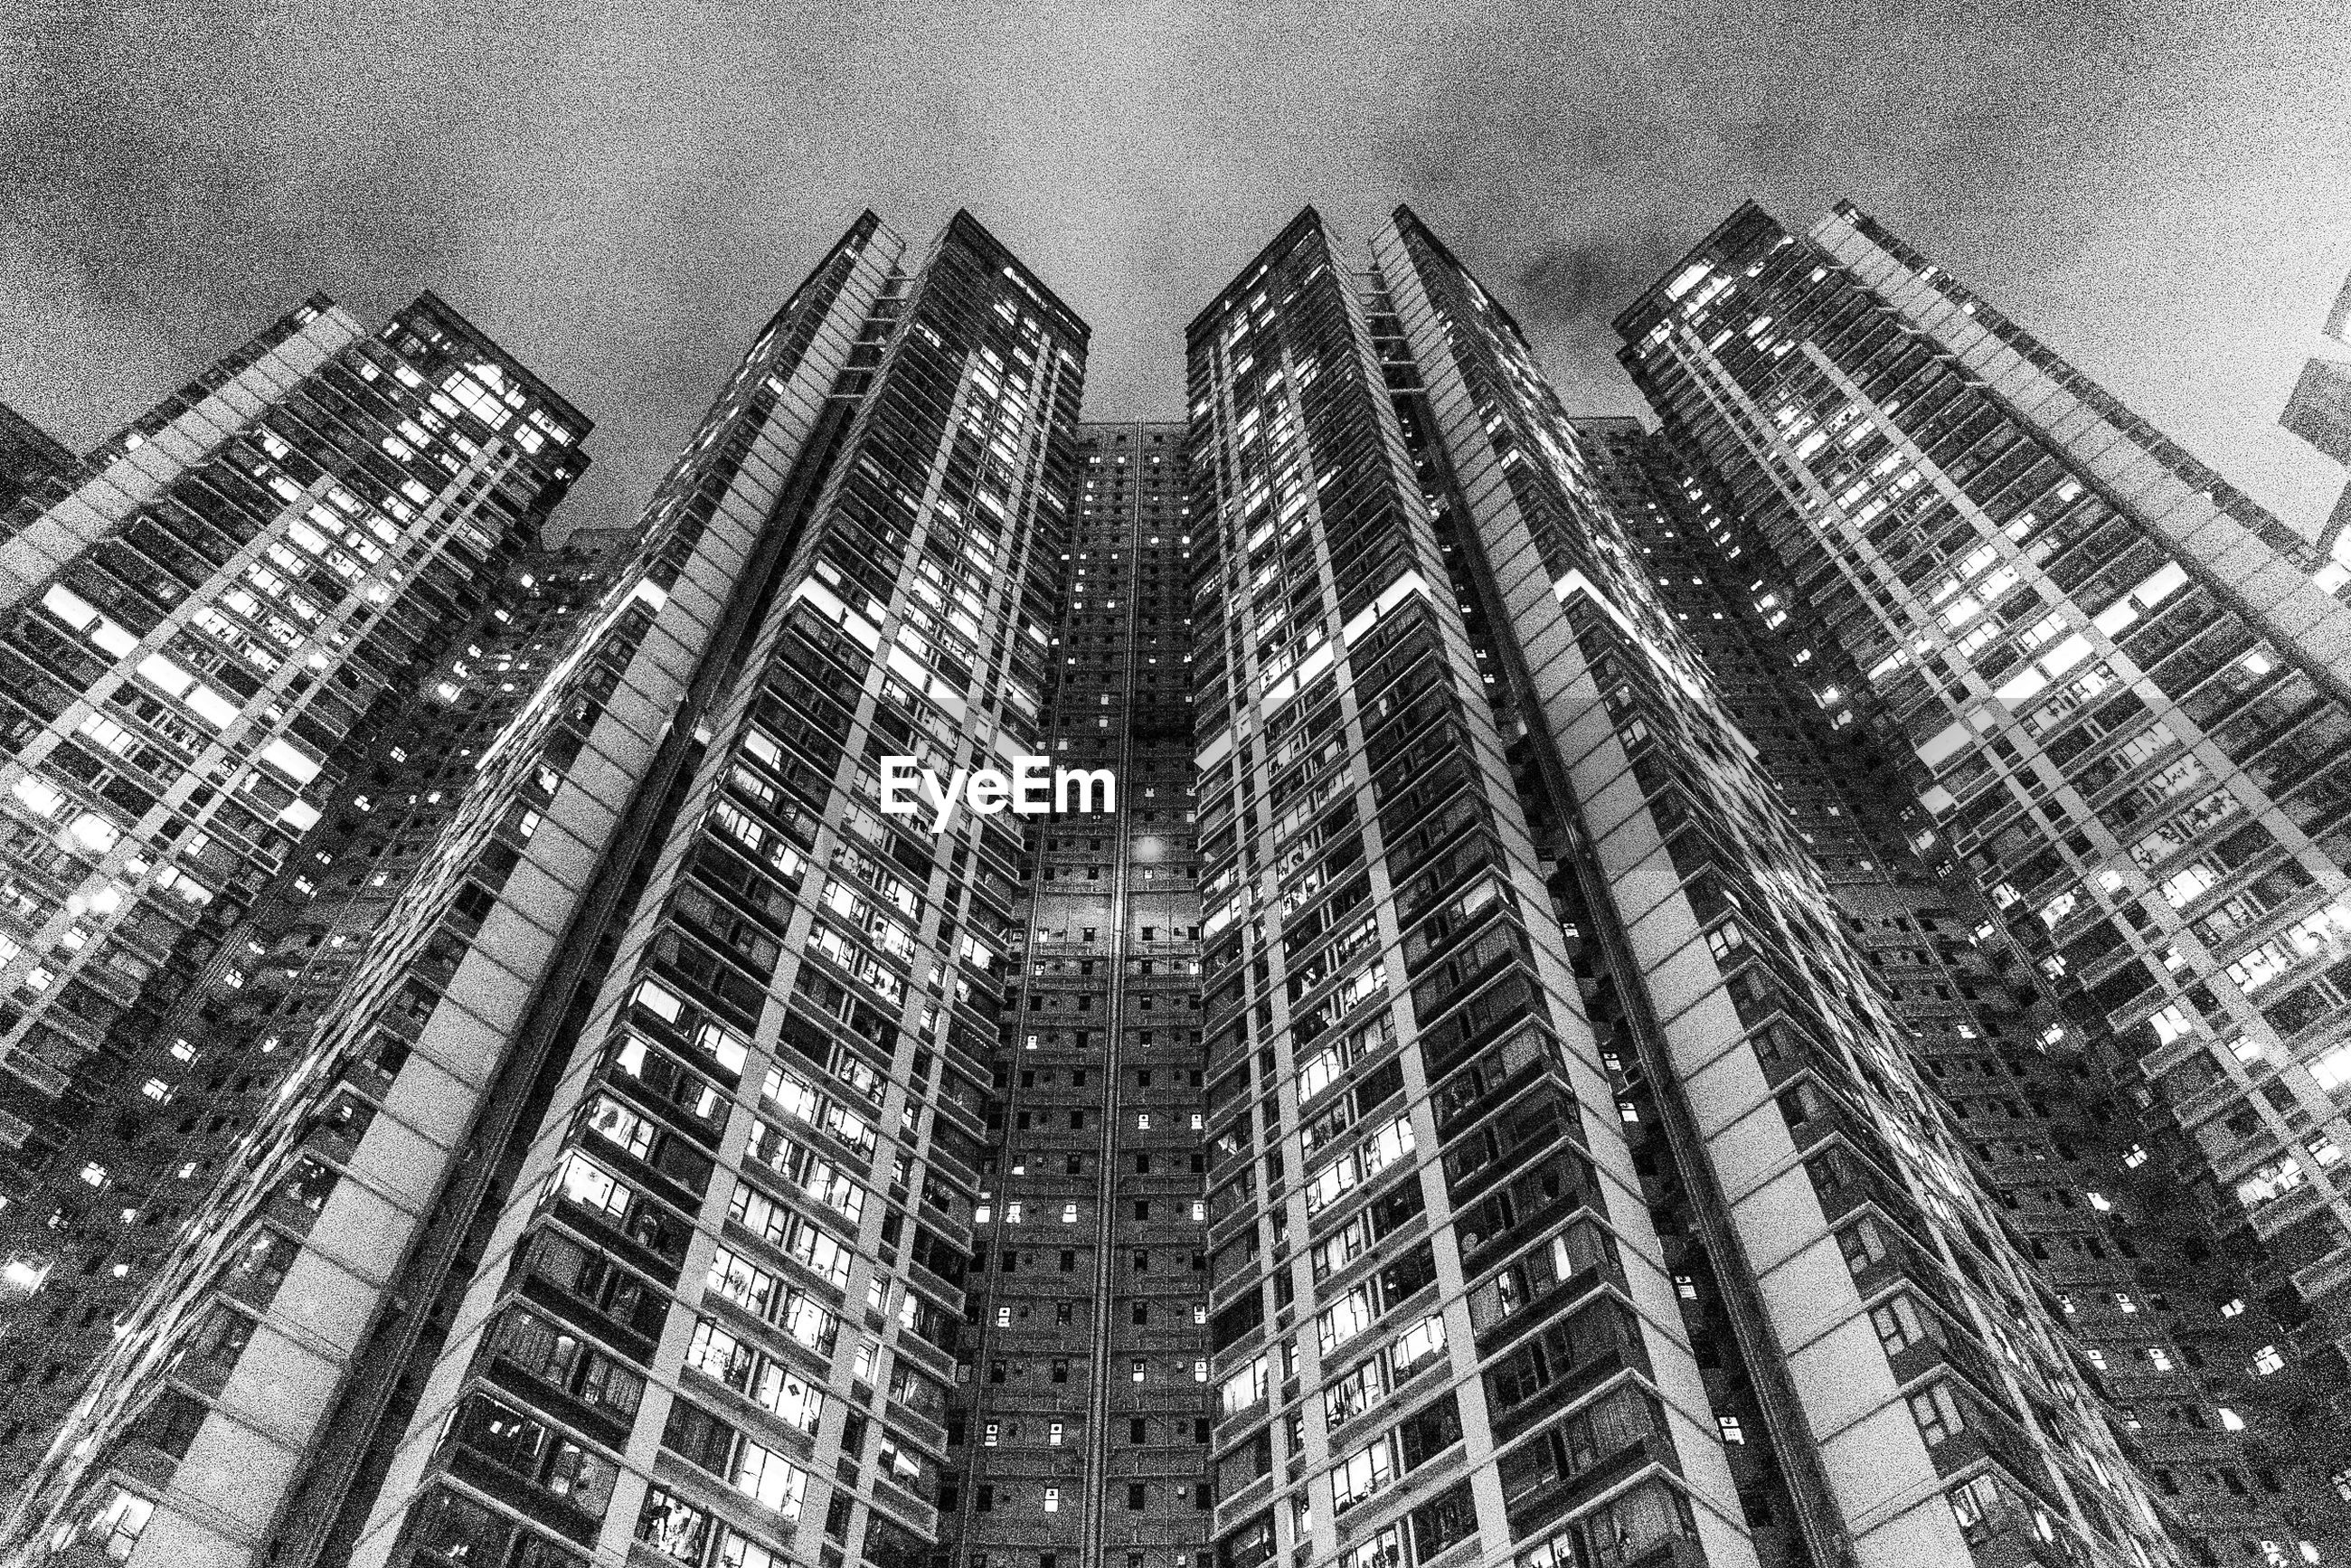 architecture, built structure, building exterior, metropolis, black and white, city, building, metropolitan area, skyscraper, office building exterior, monochrome, monochrome photography, sky, tower block, low angle view, cityscape, no people, office, residential district, tower, nature, residential area, urban area, outdoors, day, skyline, condominium, downtown, development